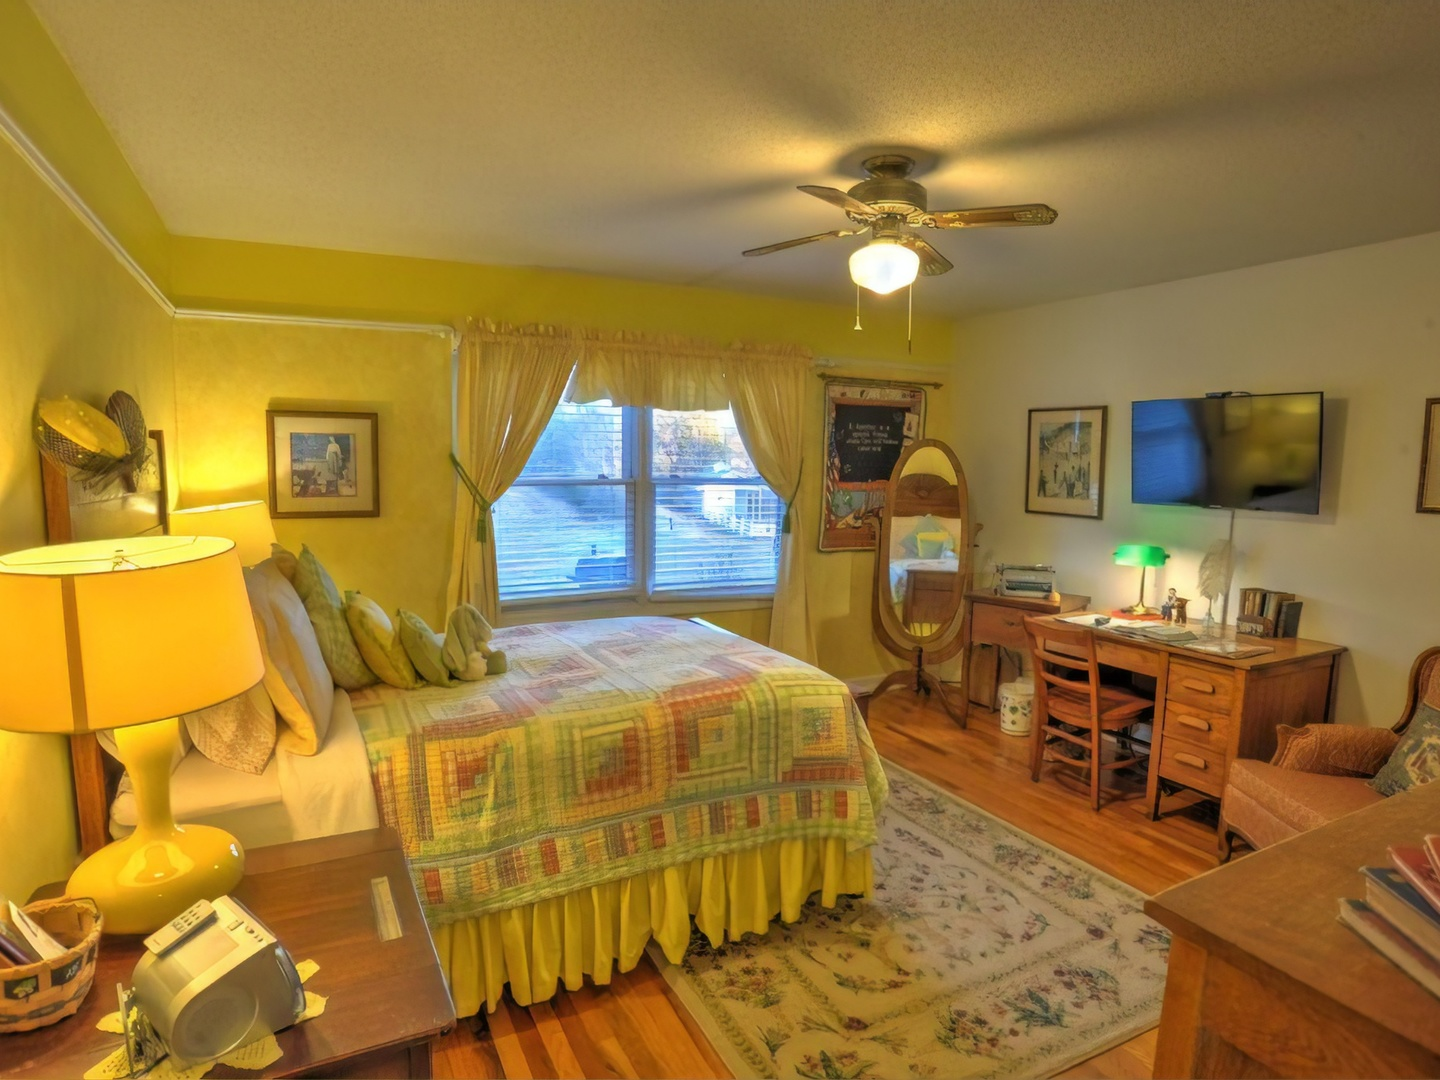 A bedroom with a bed and desk in a room at Blue Mountain Mist Country Inn and Cottages.